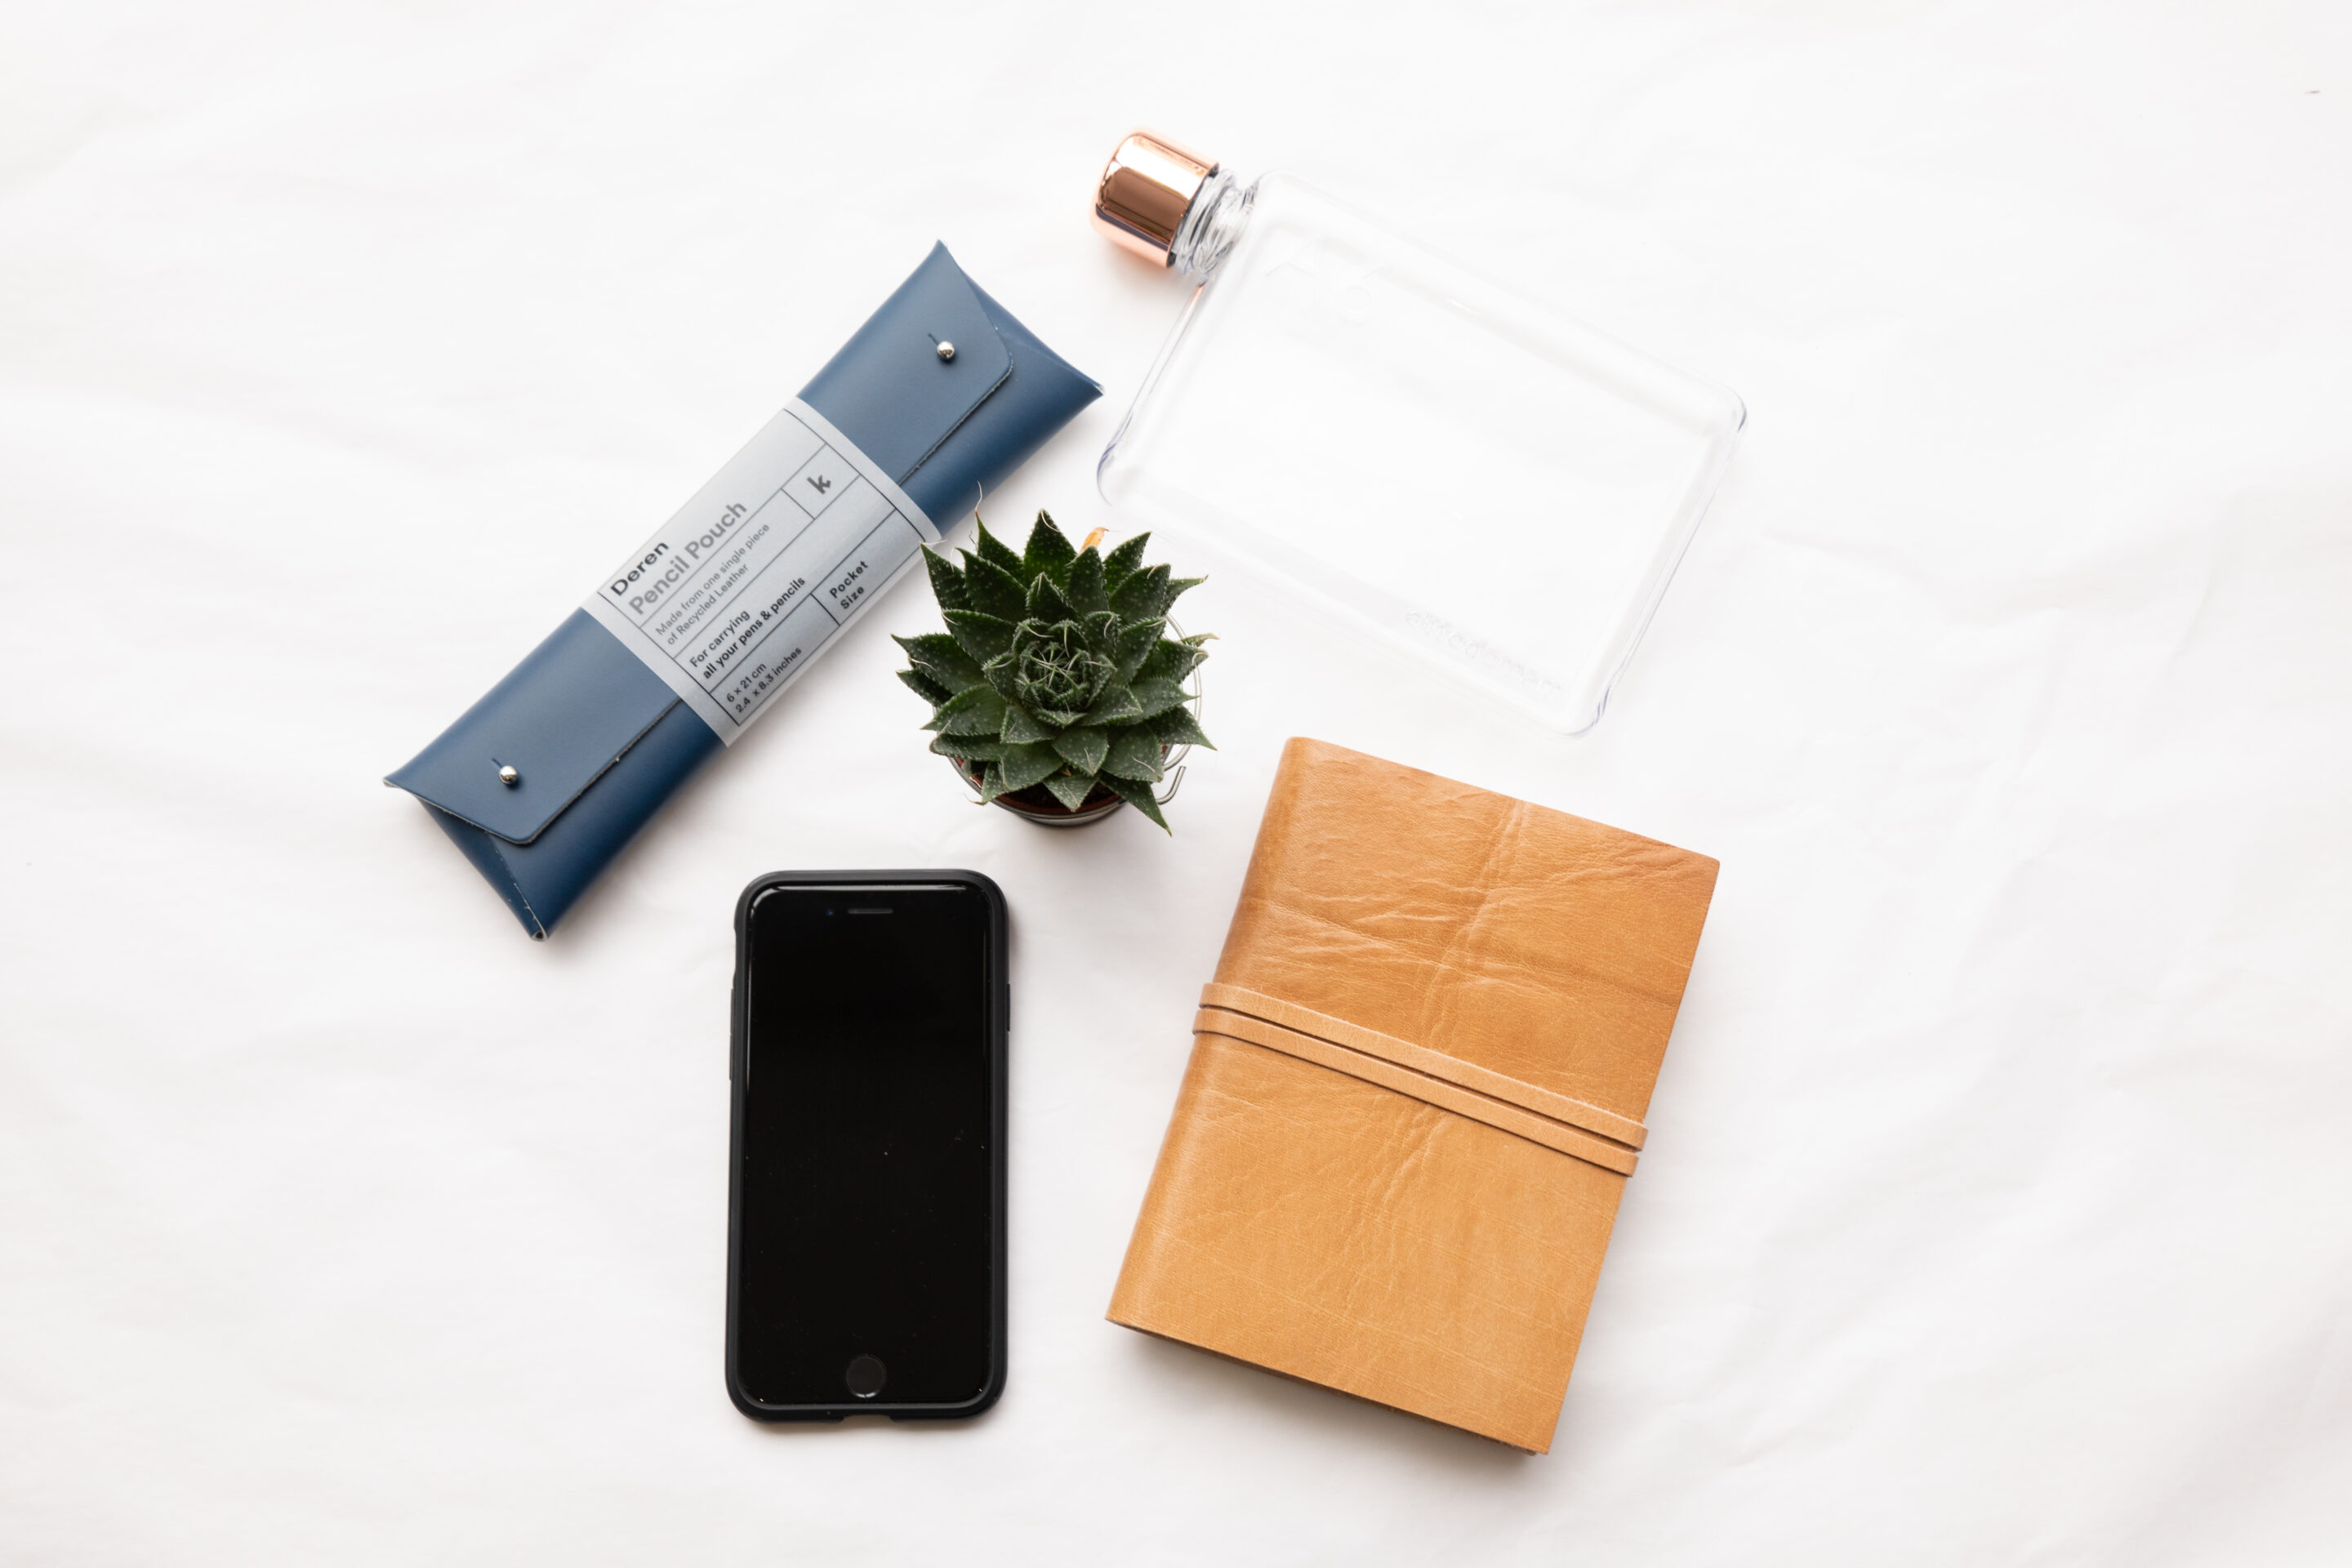 selection of business desk tools - phone, diary, plant, pencil case, water bottle